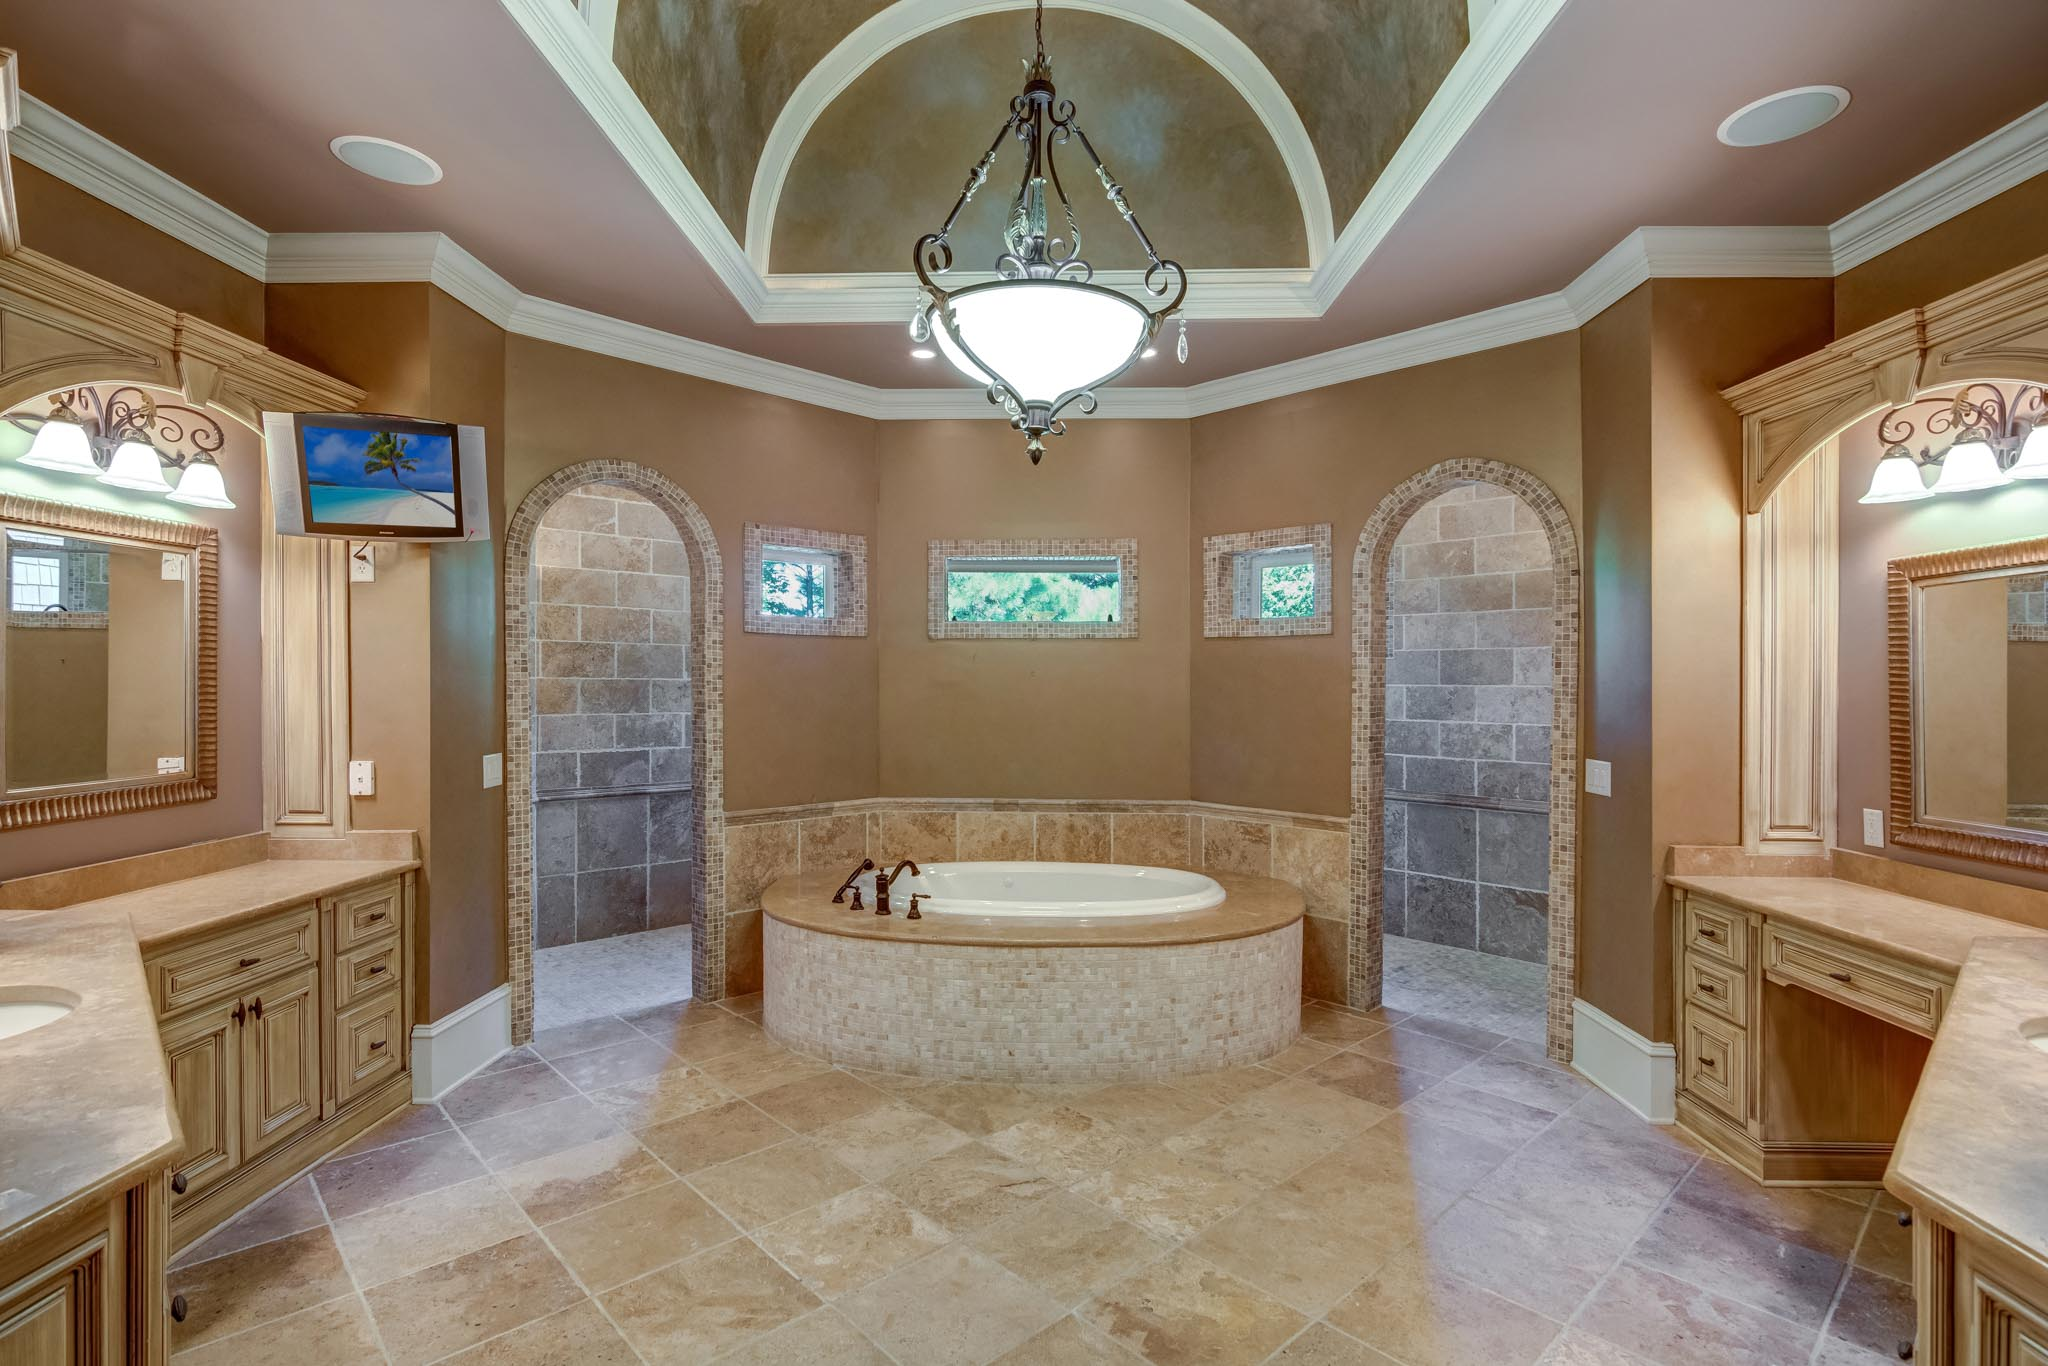 real_estate_photographer_bathroom_photography-1.jpg